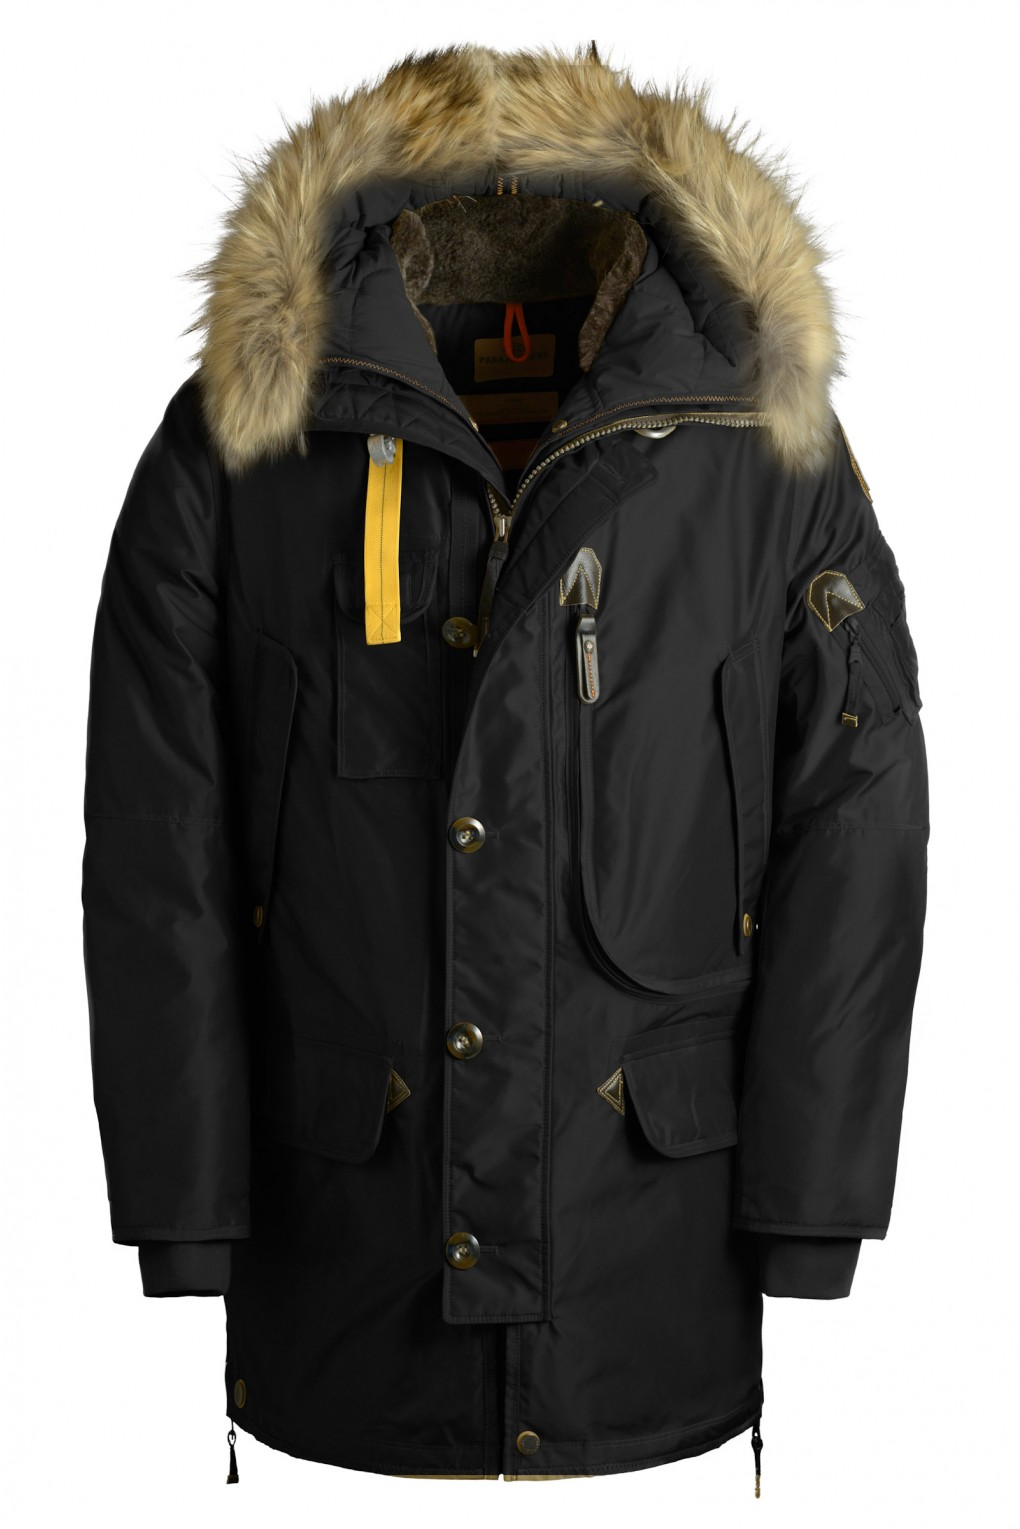 parajumpers KODIAK man outerwear Black